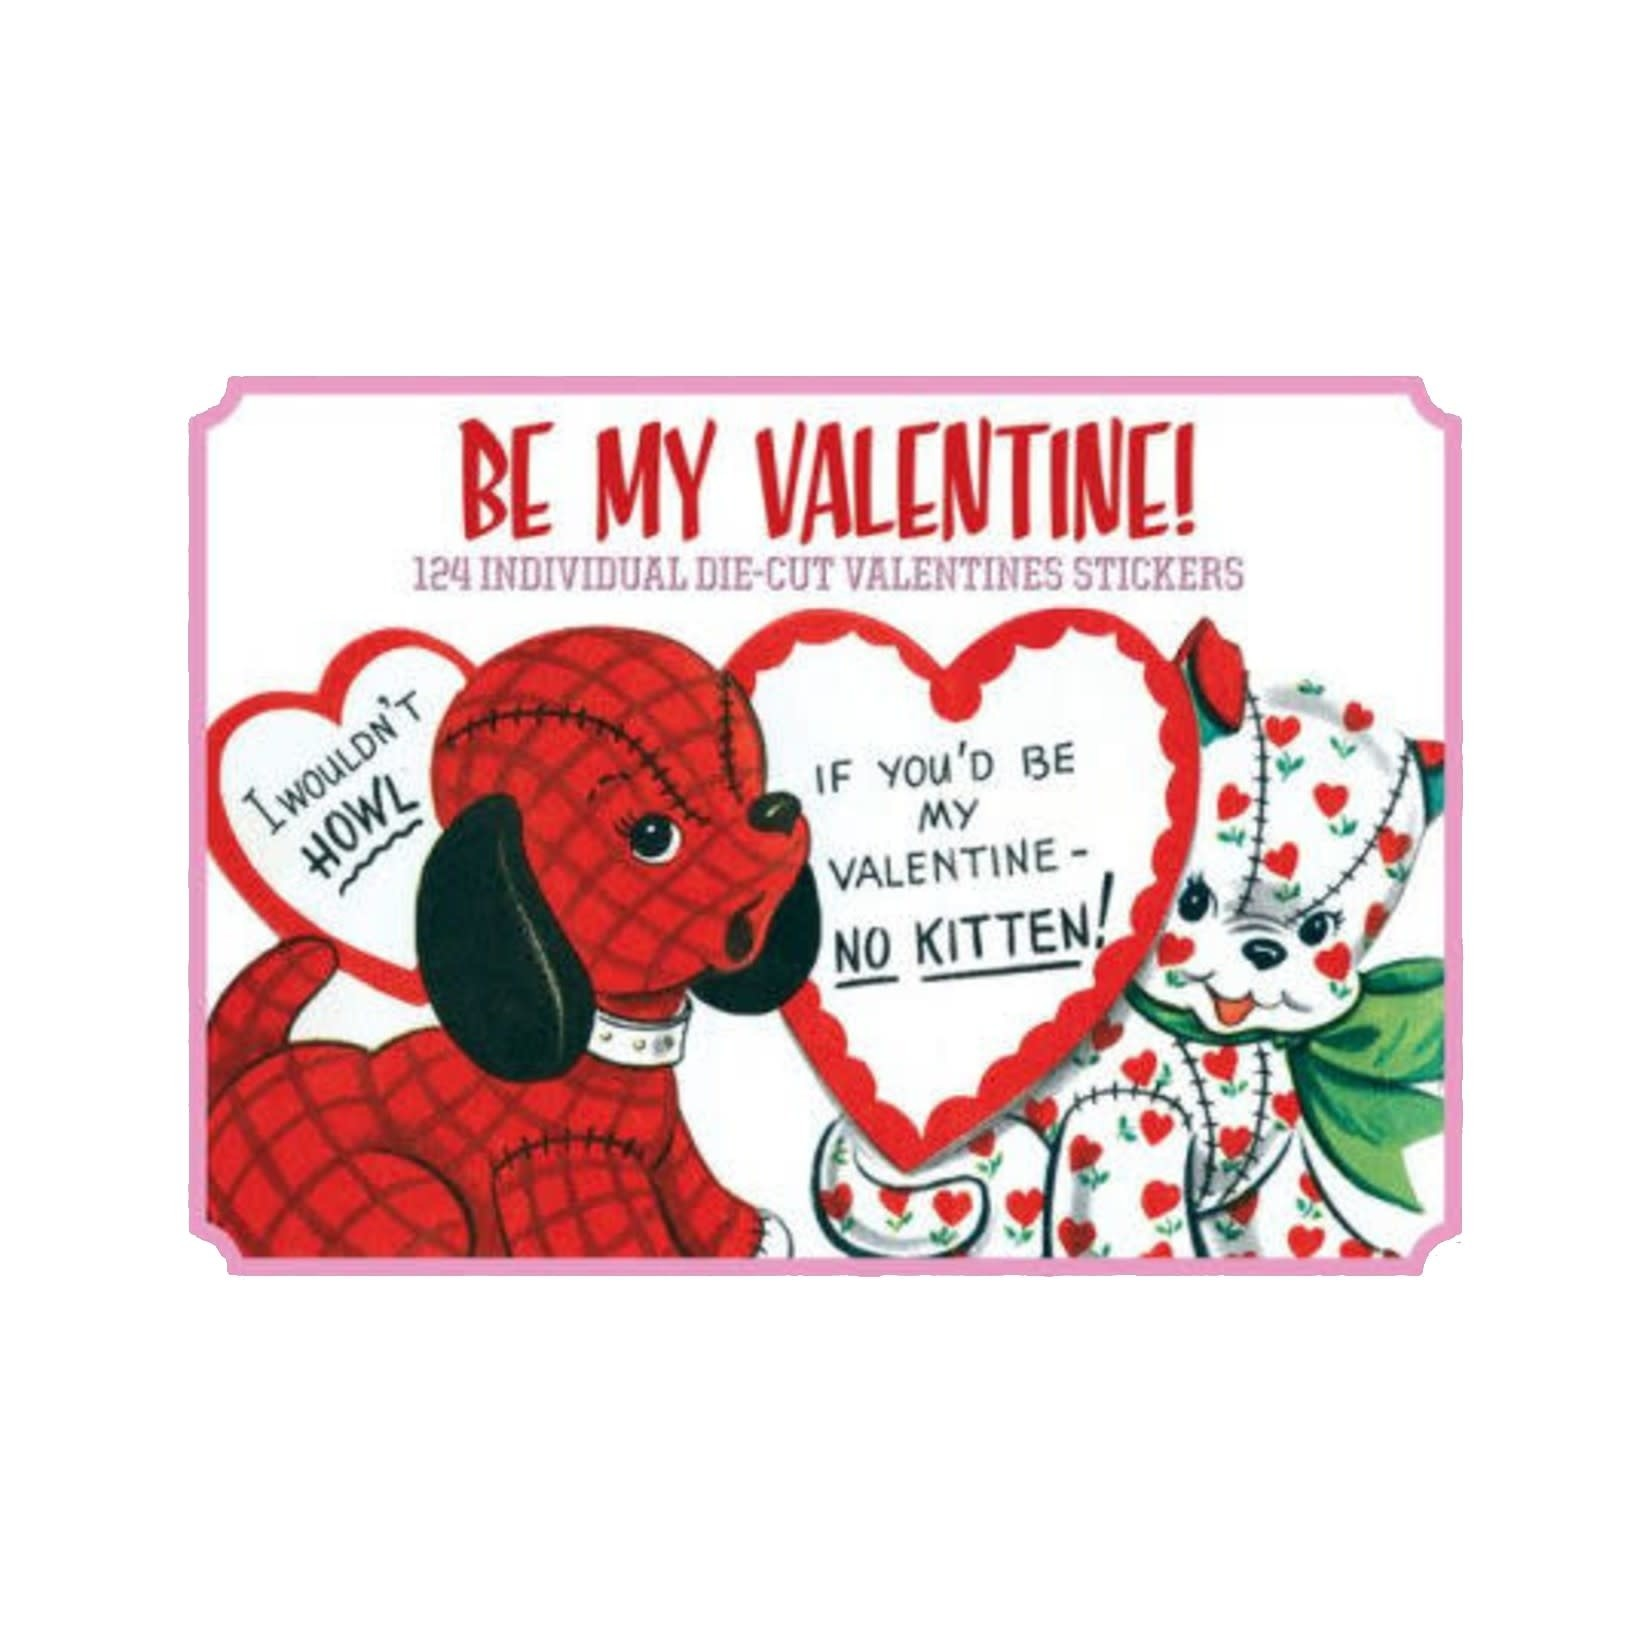 LAUGHING ELEPHANT Deluxe Sticker Box: Vintage Be My Valentine